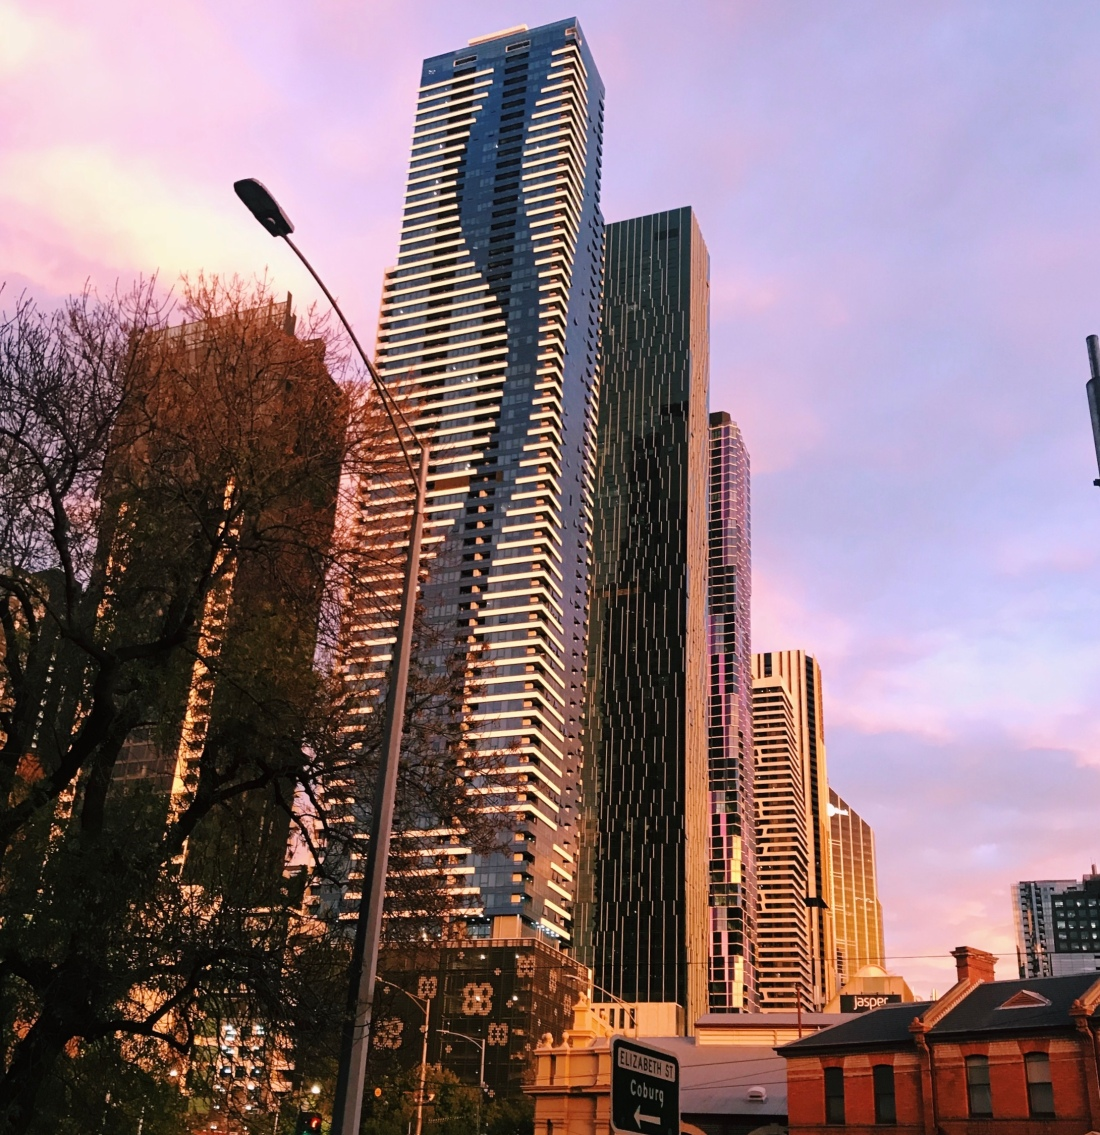 Melbourne In 48 Hours: A 20-Something's Travel Guide